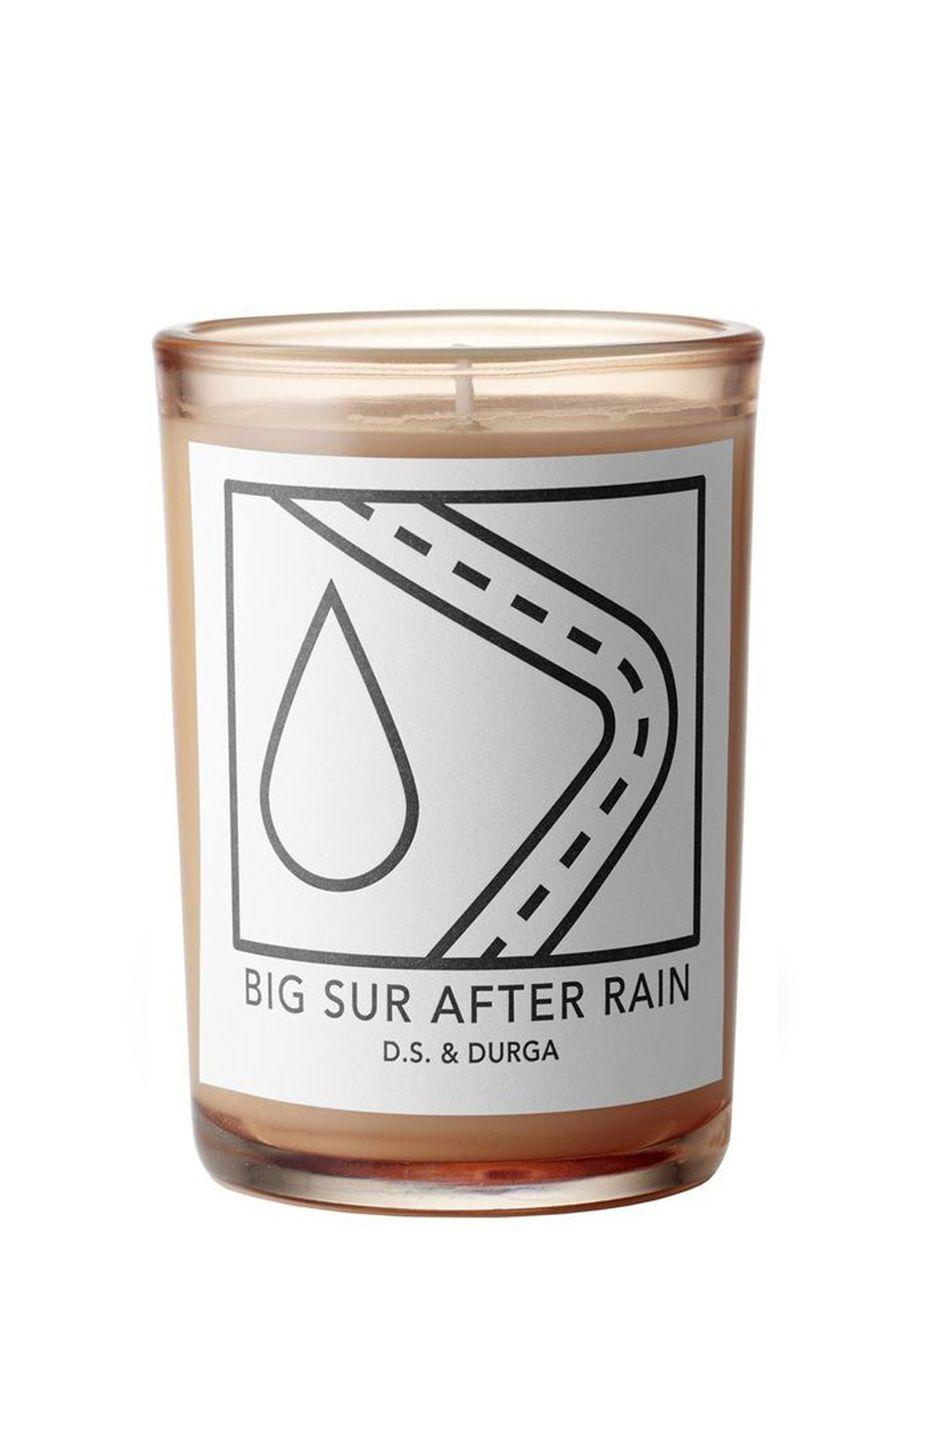 """<p>D.S. & Durga Big Sur After Rain</p><p>£60</p><p>Libertylondon.com</p><p><a class=""""link rapid-noclick-resp"""" href=""""https://go.redirectingat.com?id=127X1599956&url=https%3A%2F%2Fwww.libertylondon.com%2Fuk%2FBig-Sur-After-Rain-Candle-200g-R174981006.html%3FistCompanyId%3D53594fab-416e-42ab-b3ca-8816d2013fe8%26istFeedId%3D6894997c-21a2-4de5-ad8c-4f4c2b36367d%26istItemId%3Dirxlxxmrp%26istBid%3Dt%26gclid%3DCjwKCAjwmf_4BRABEiwAGhDfSahoHMFATdlj7PDPieuCjfCPuq4erh0Sq22NTafIocqz93UKyRsULRoCeccQAvD_BwE&sref=https%3A%2F%2Fwww.harpersbazaar.com%2Fuk%2Fbeauty%2Ffragrance%2Fg30698193%2Fbest-scented-candles%2F"""" rel=""""nofollow noopener"""" target=""""_blank"""" data-ylk=""""slk:SHOP NOW"""">SHOP NOW</a></p><p> Brooklyn-based D.S & Durga is one of the best-looking niche fragrance brands to invest in today. The scents are remarkable, too – Big Sur After Rain clears the air with a hit of herbal eucalyptus, underpinned by wet grass and dew-kissed plants.</p><p>Connecting the dots between sound and scent, the duo have created a <a href=""""https://dsanddurga.com/collections/music"""" rel=""""nofollow noopener"""" target=""""_blank"""" data-ylk=""""slk:playlist"""" class=""""link rapid-noclick-resp"""">playlist</a> to match the mood of each votive – head to the brand's website, and hit play as you ignite. </p>"""